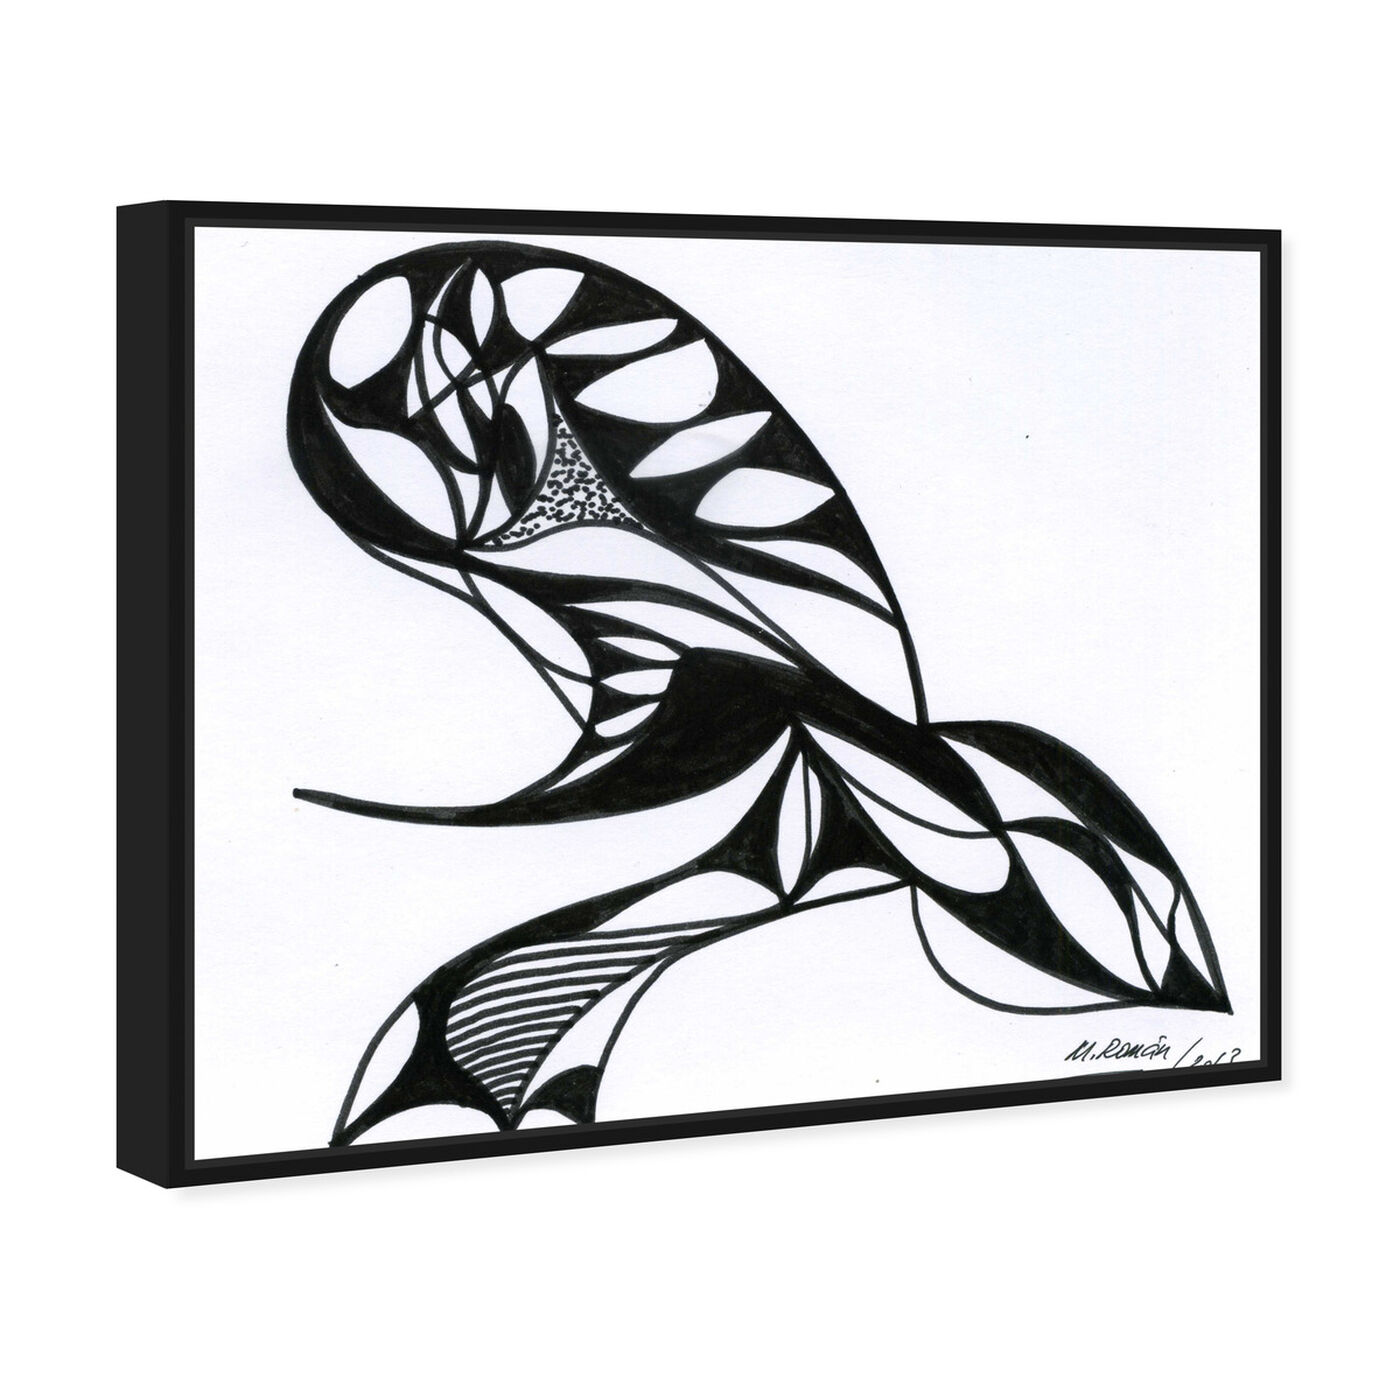 Angled view of The Sting featuring abstract and shapes art.